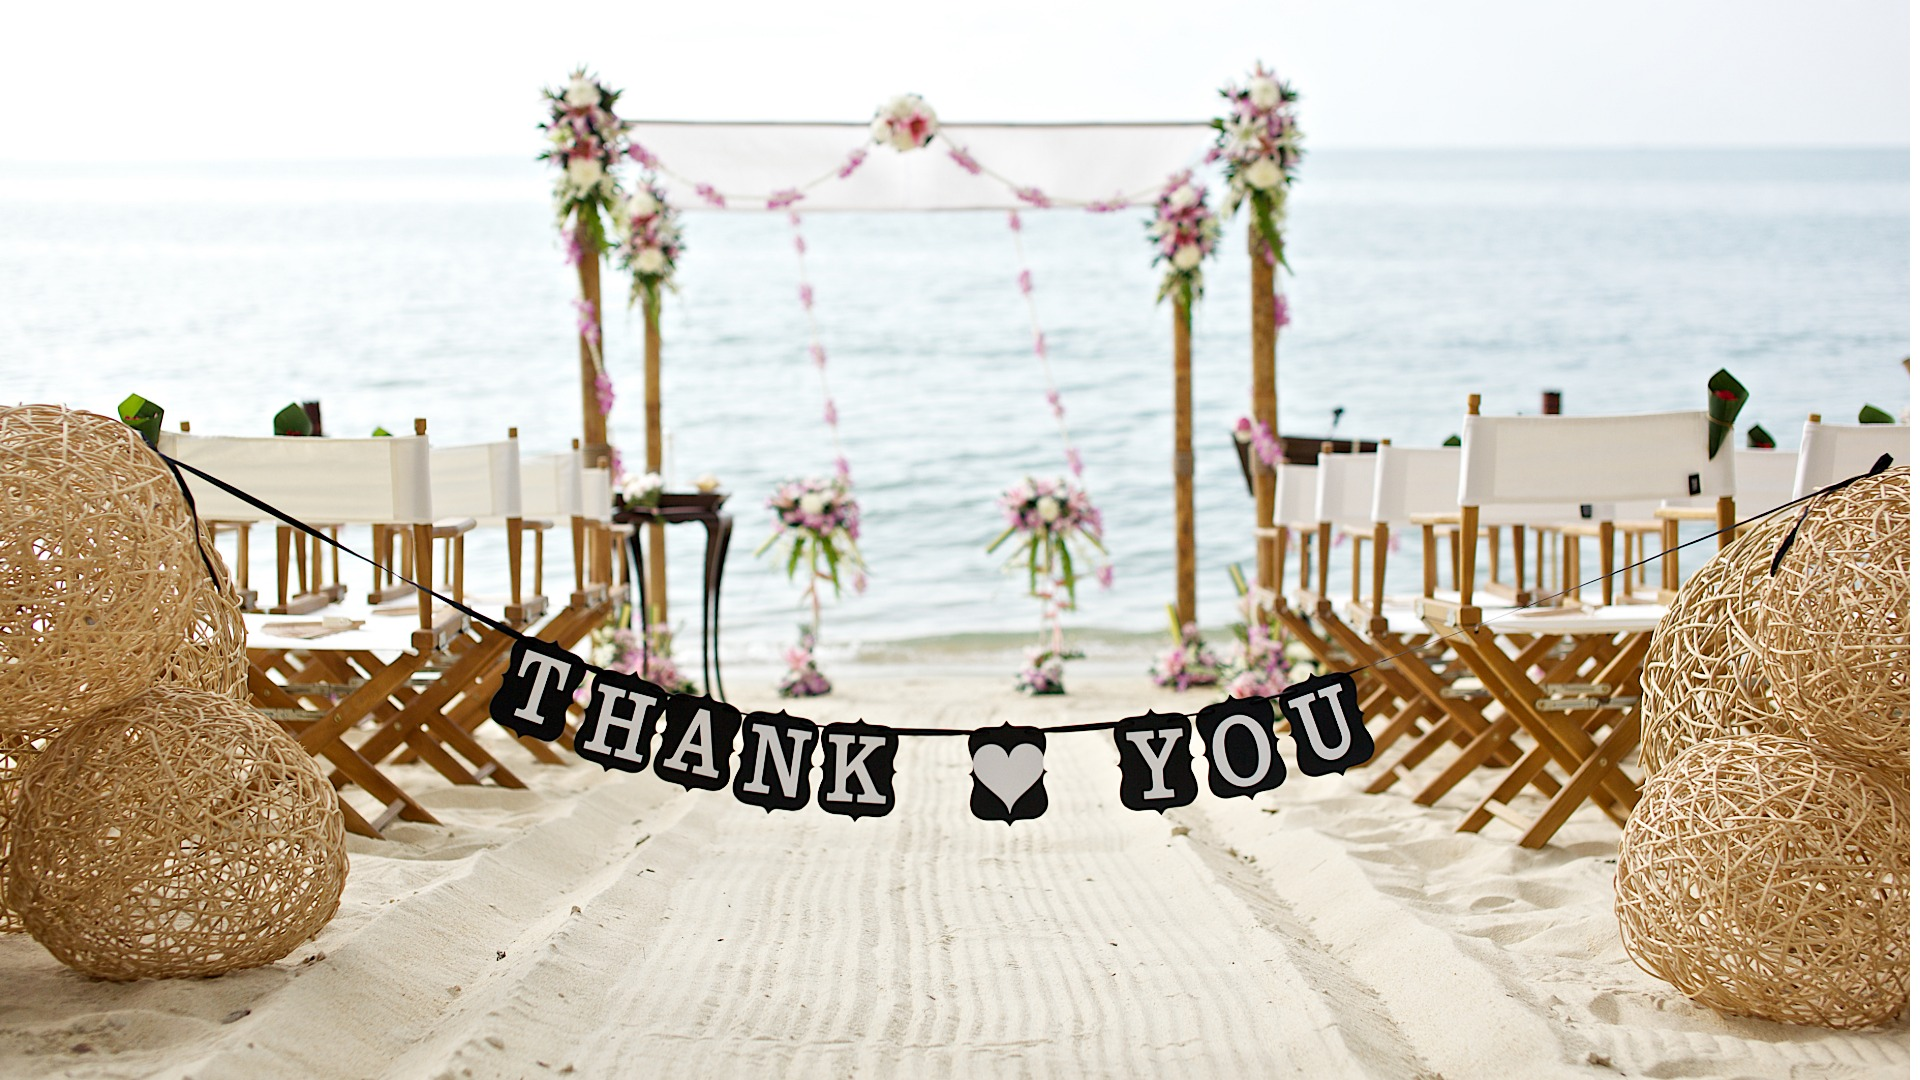 How To Write Wedding Thank You Cards With Tips Wording Examples